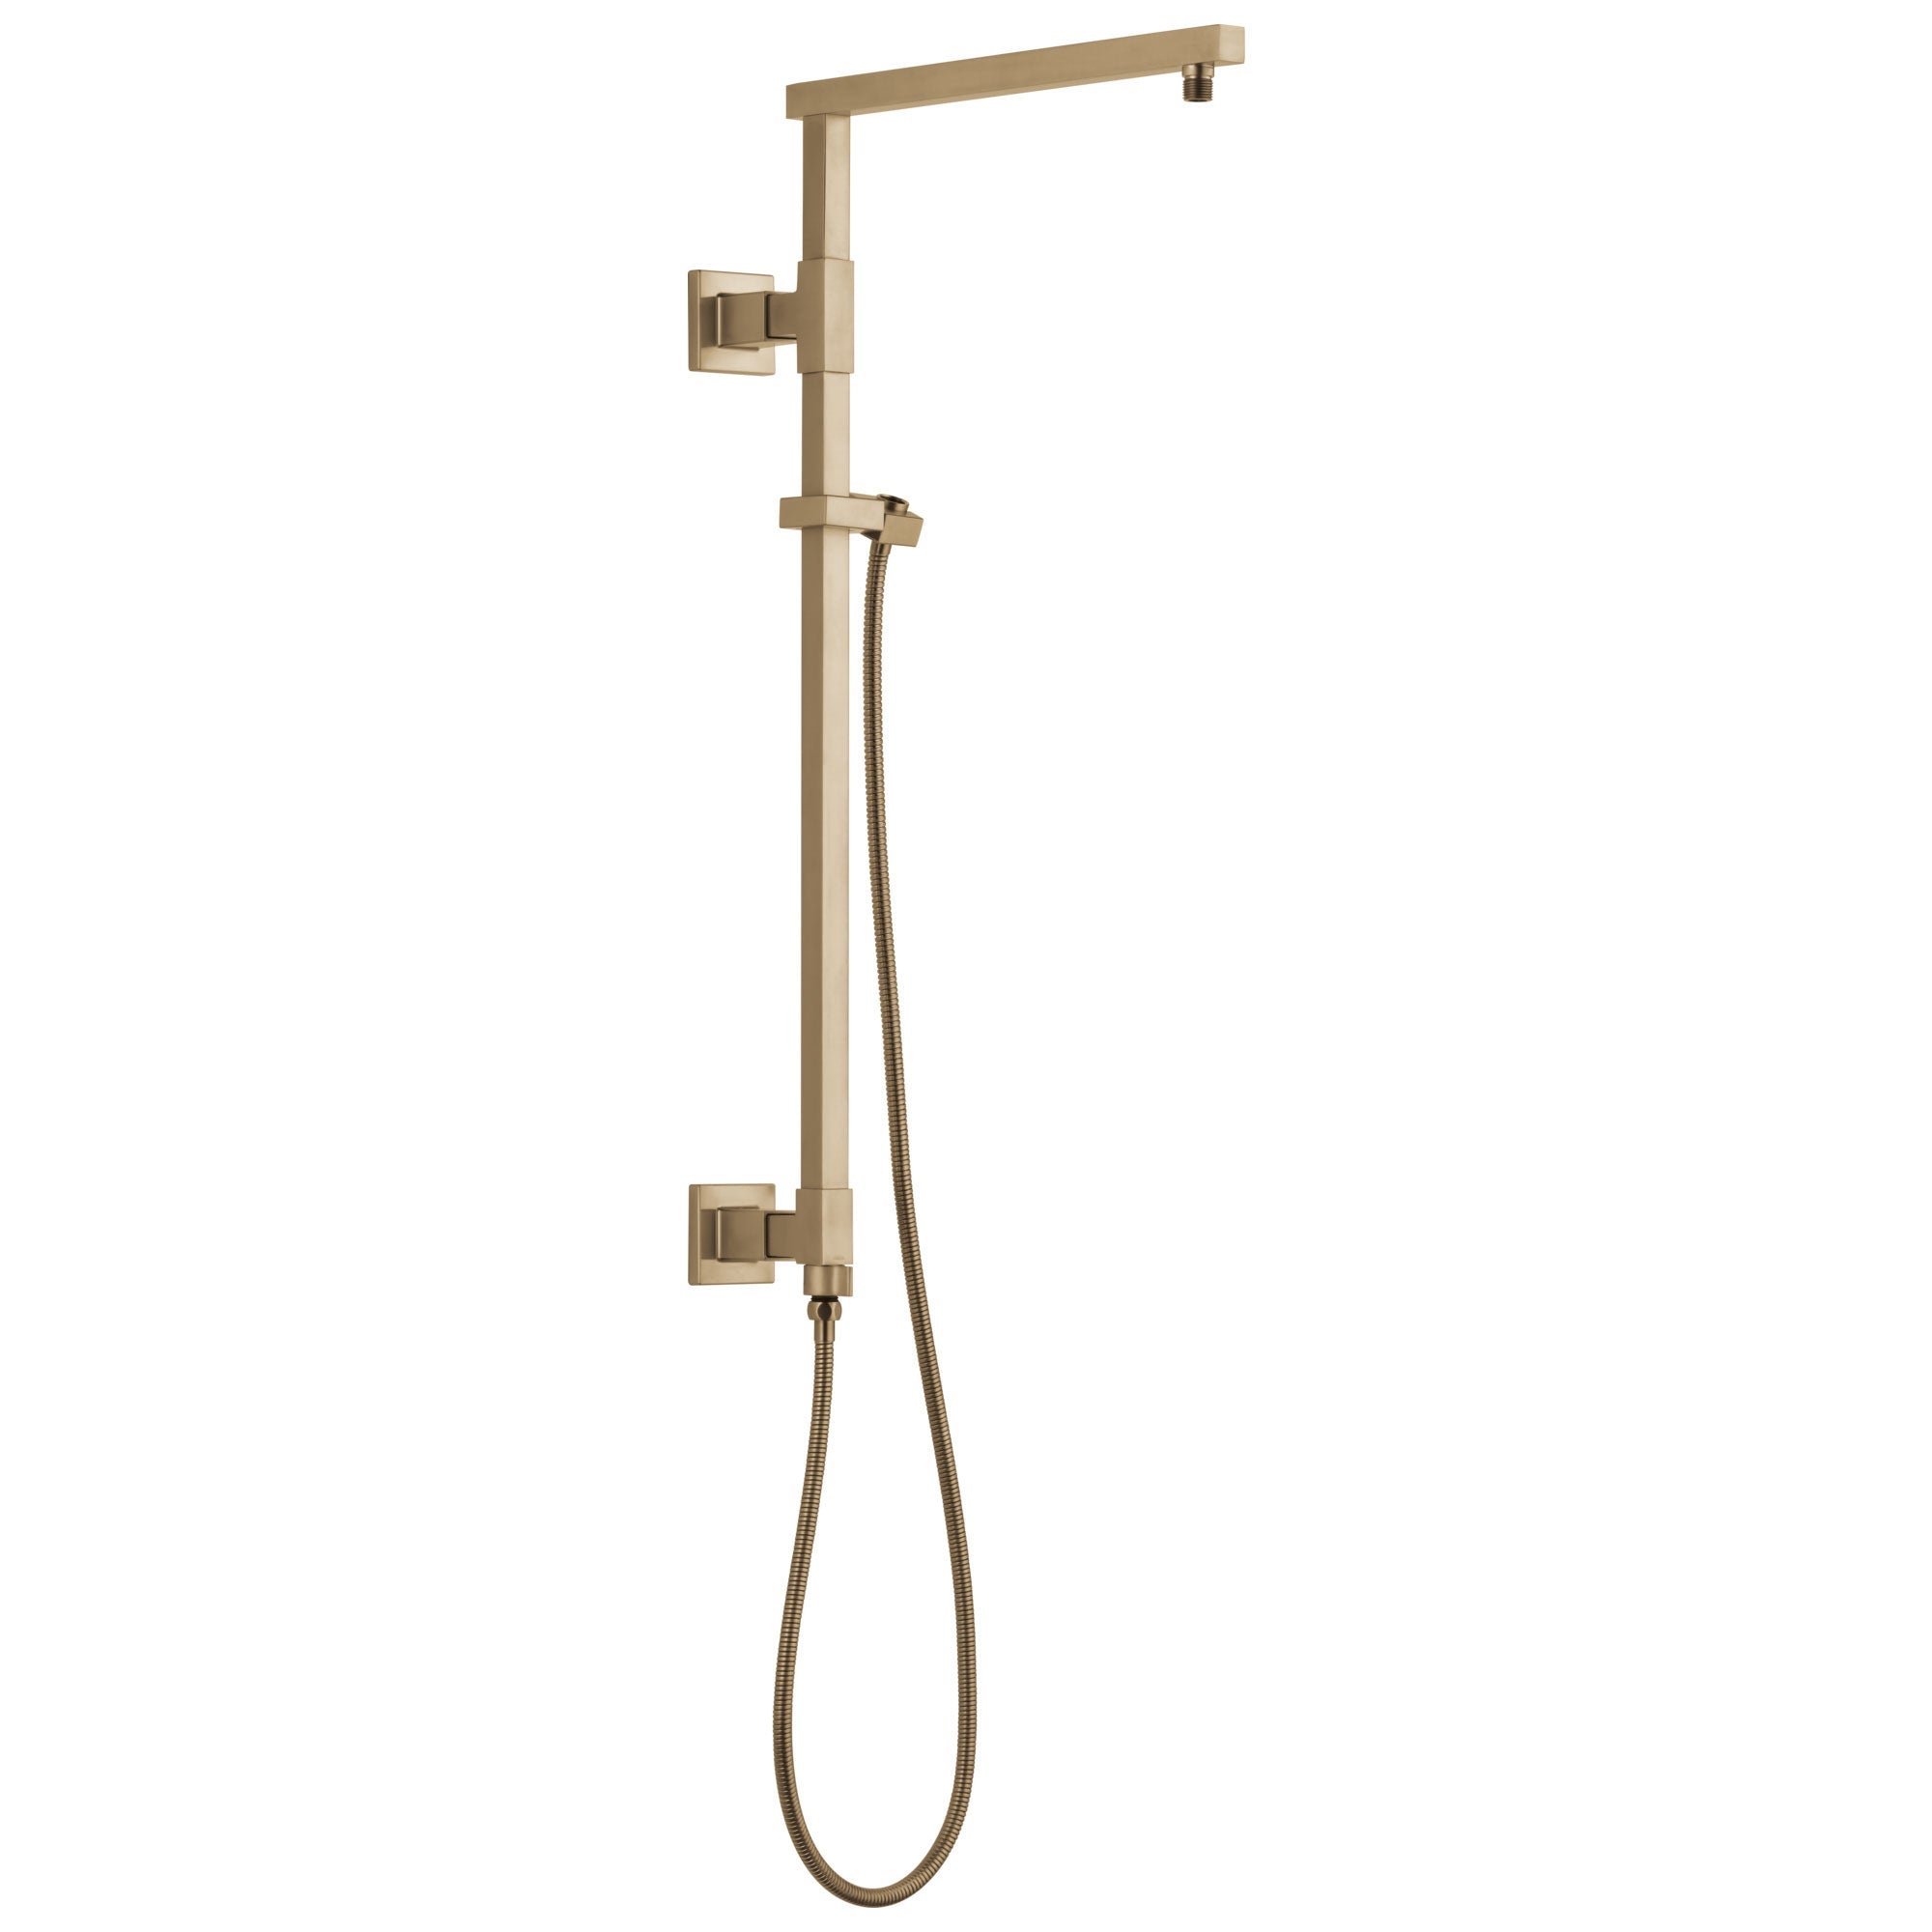 "Delta Champagne Bronze Finish Emerge Modern Angular Square Shower Column 26"" (Requires Showerhead, Hand Spray, and Control) D58420CZ"